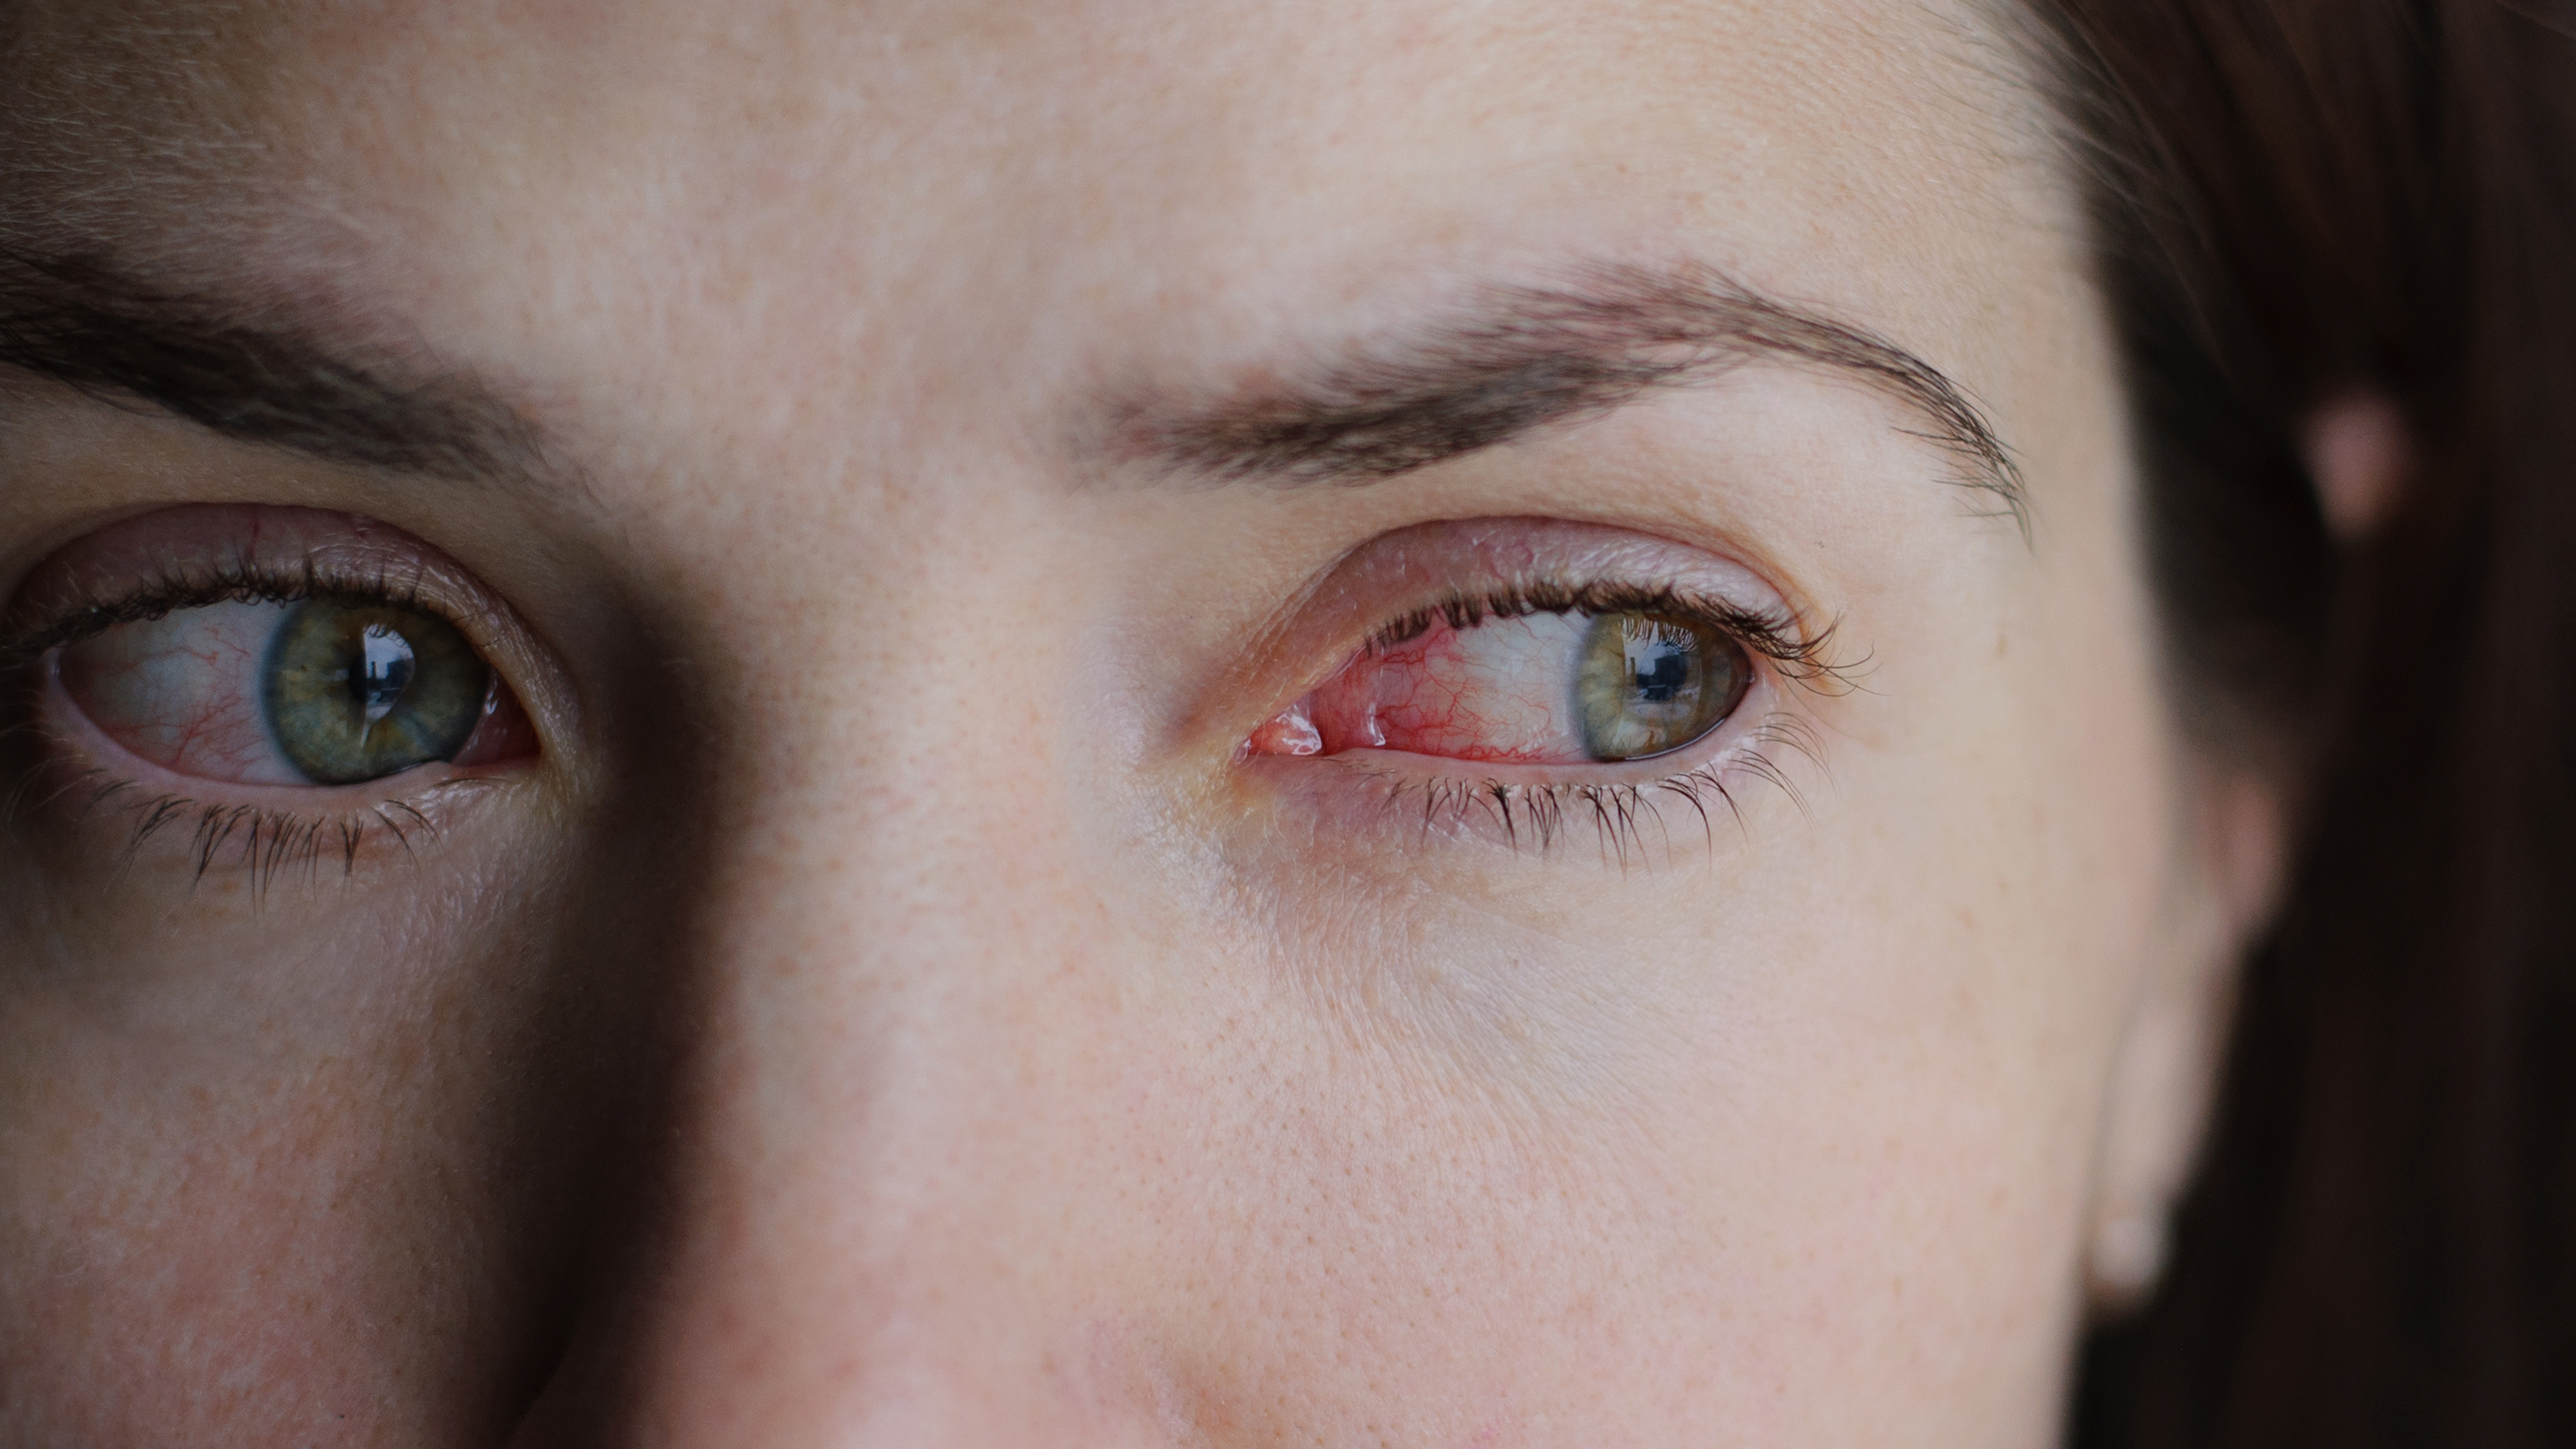 Should I go to work with pink eye?